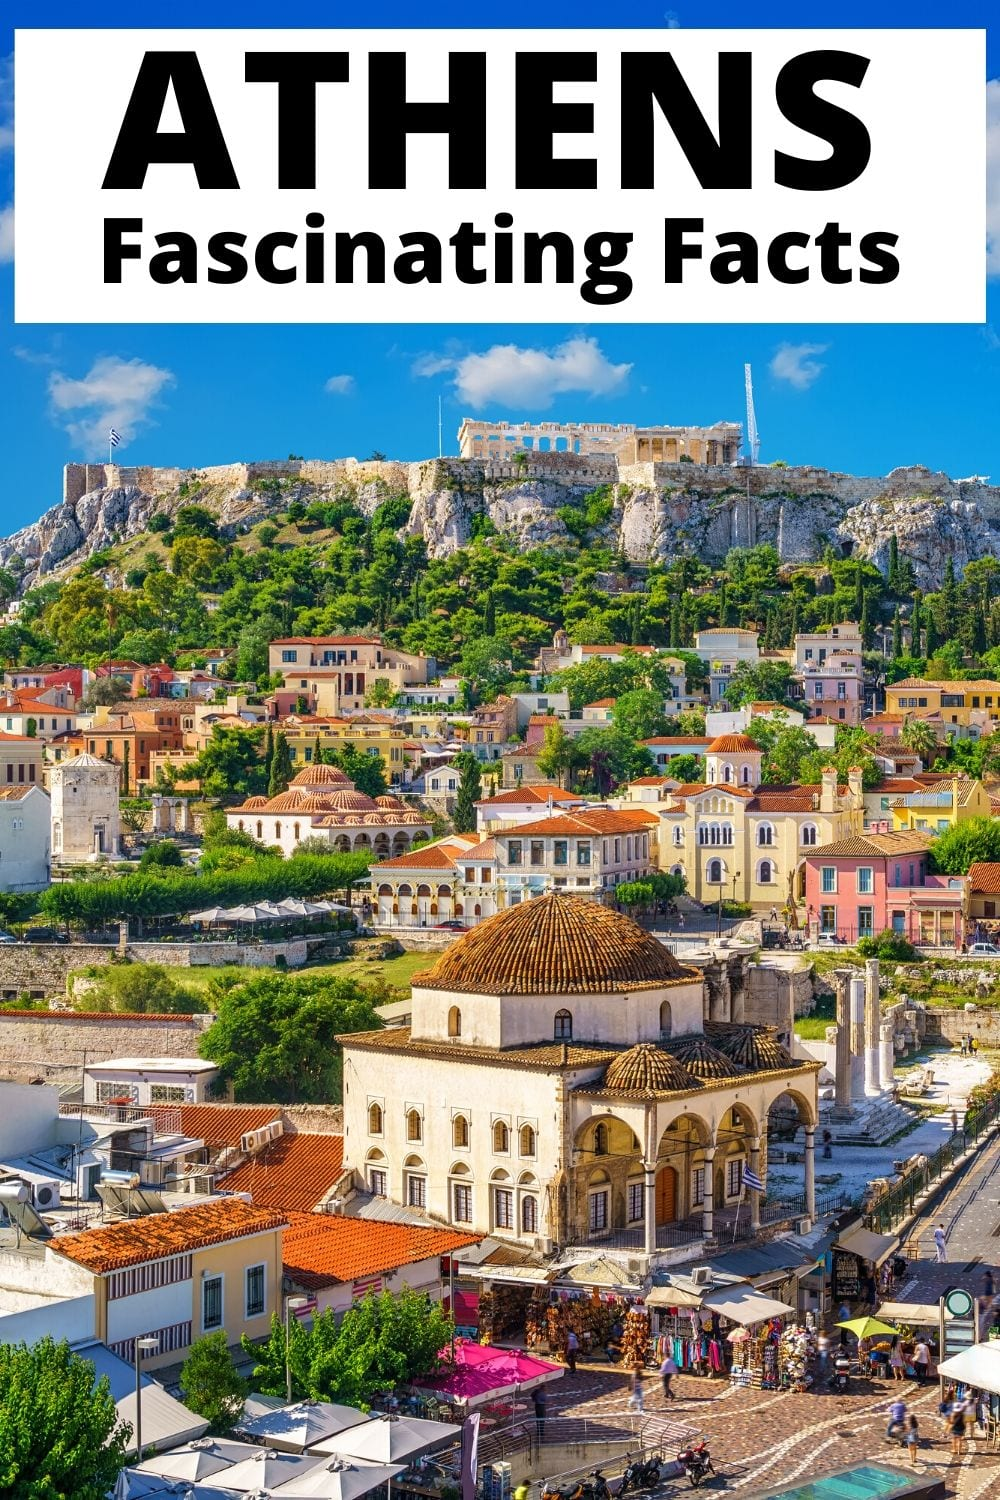 Athens in Greece is one of the world's oldest cities with a rich cultural heritage. Here's a collection of interesting facts about Athens you may not know